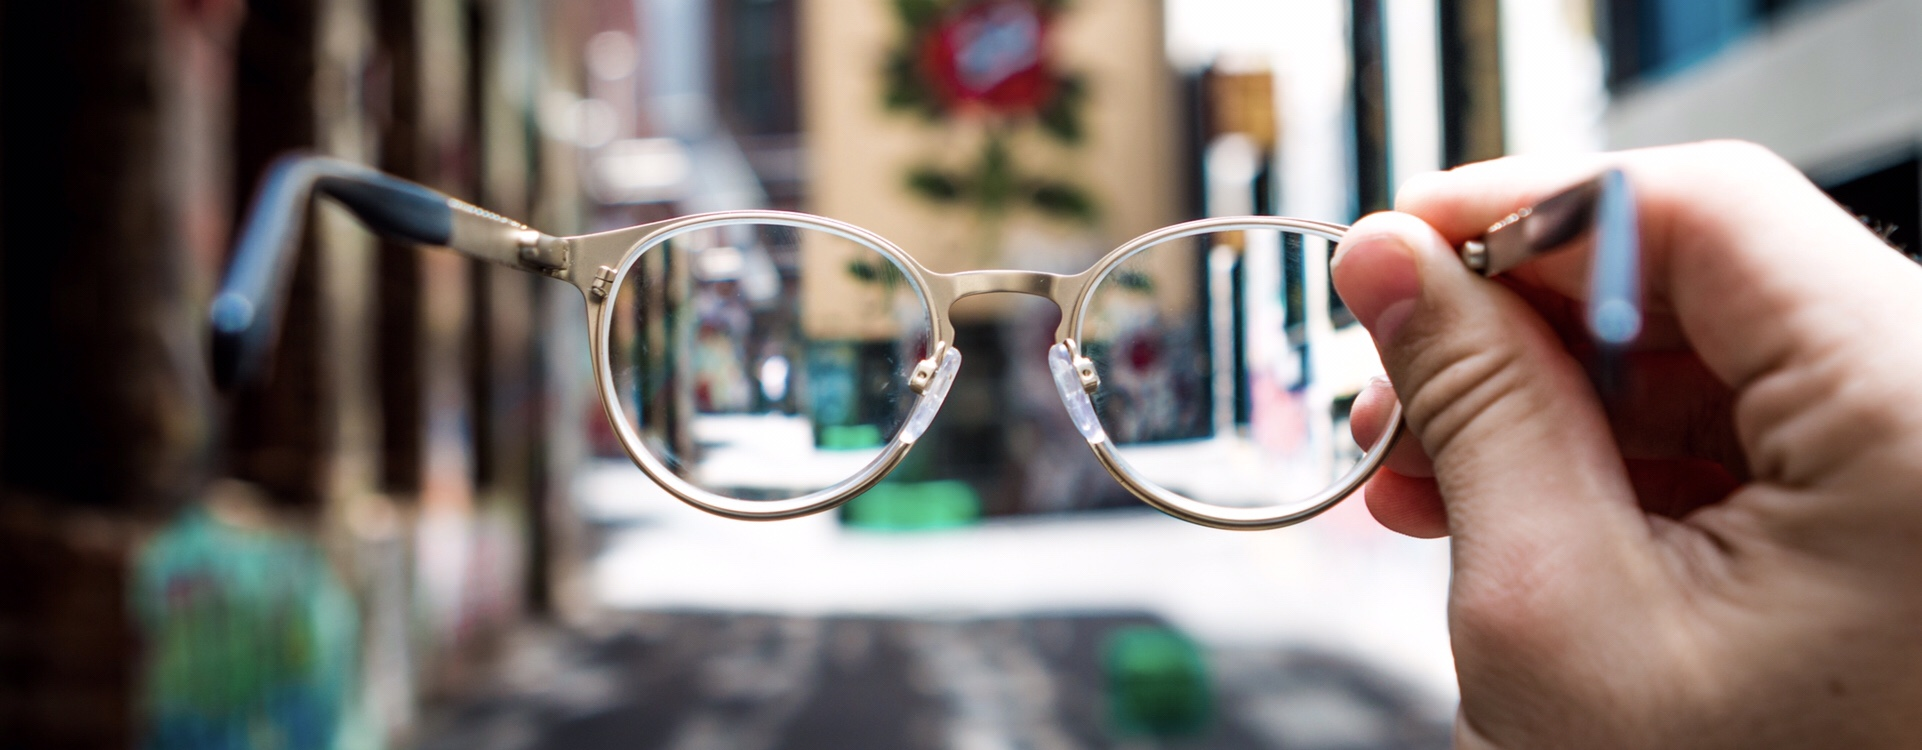 glasses out of focus